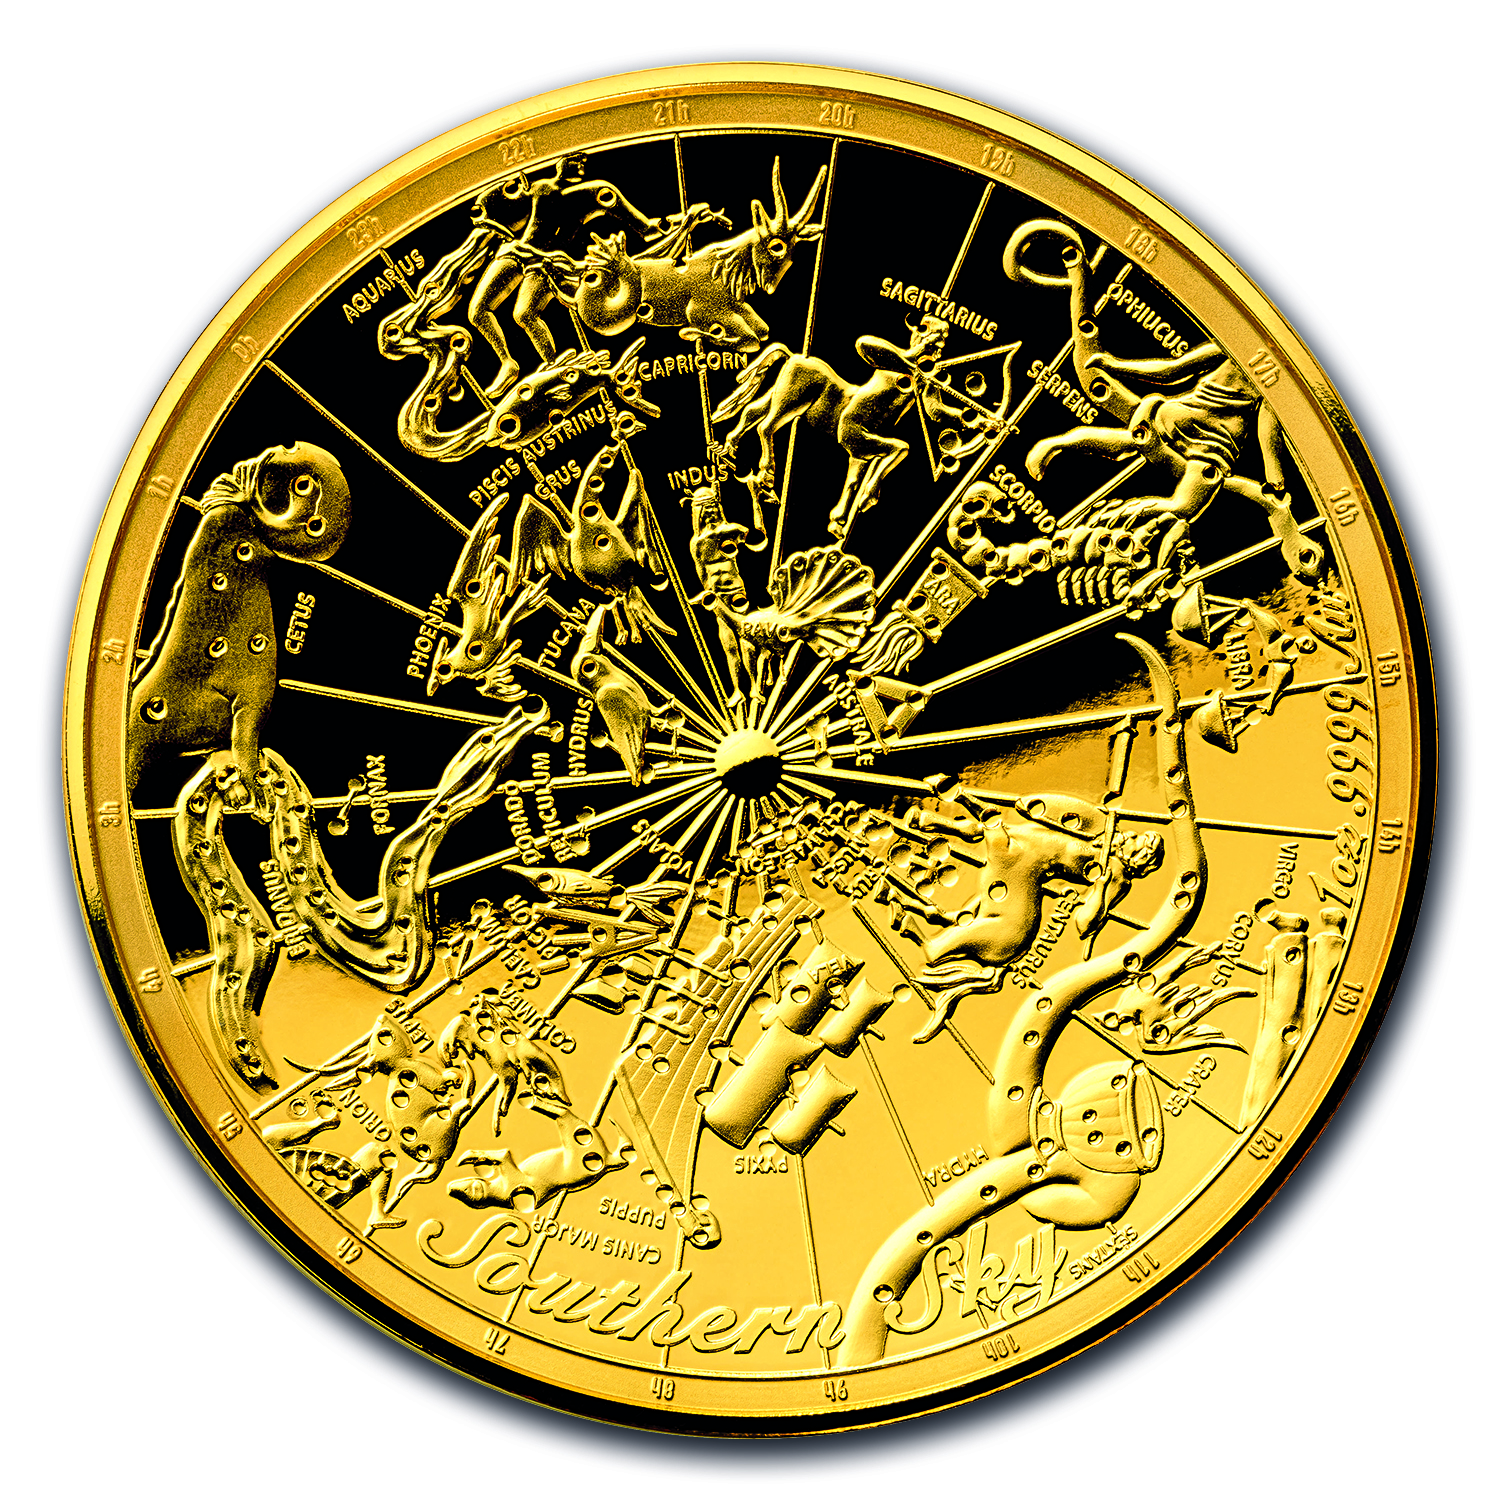 2017 Australia 1 oz $100 Gold Southern Sky Domed Proof